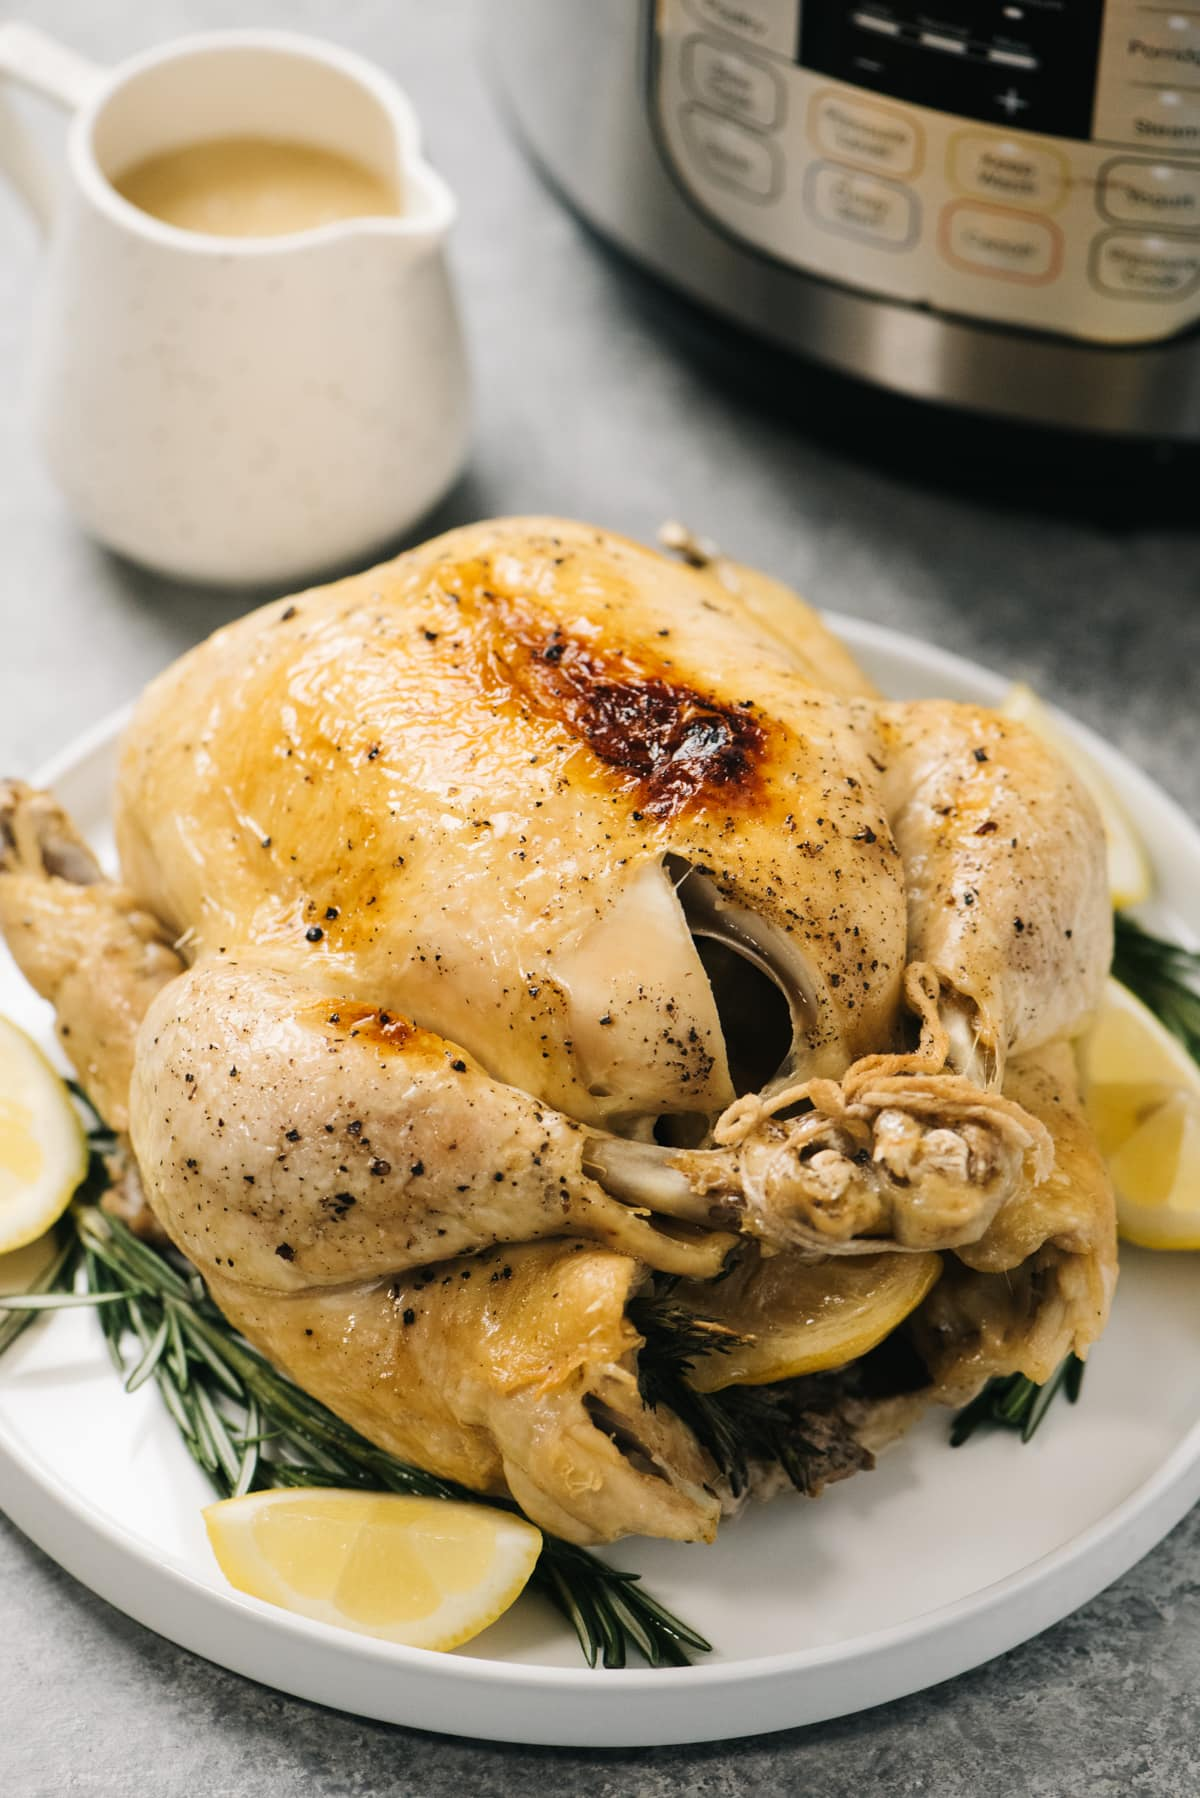 Side view, a whole instant pot chicken on a serving platter with a pitcher of gravy and a pressure cooker in the background.